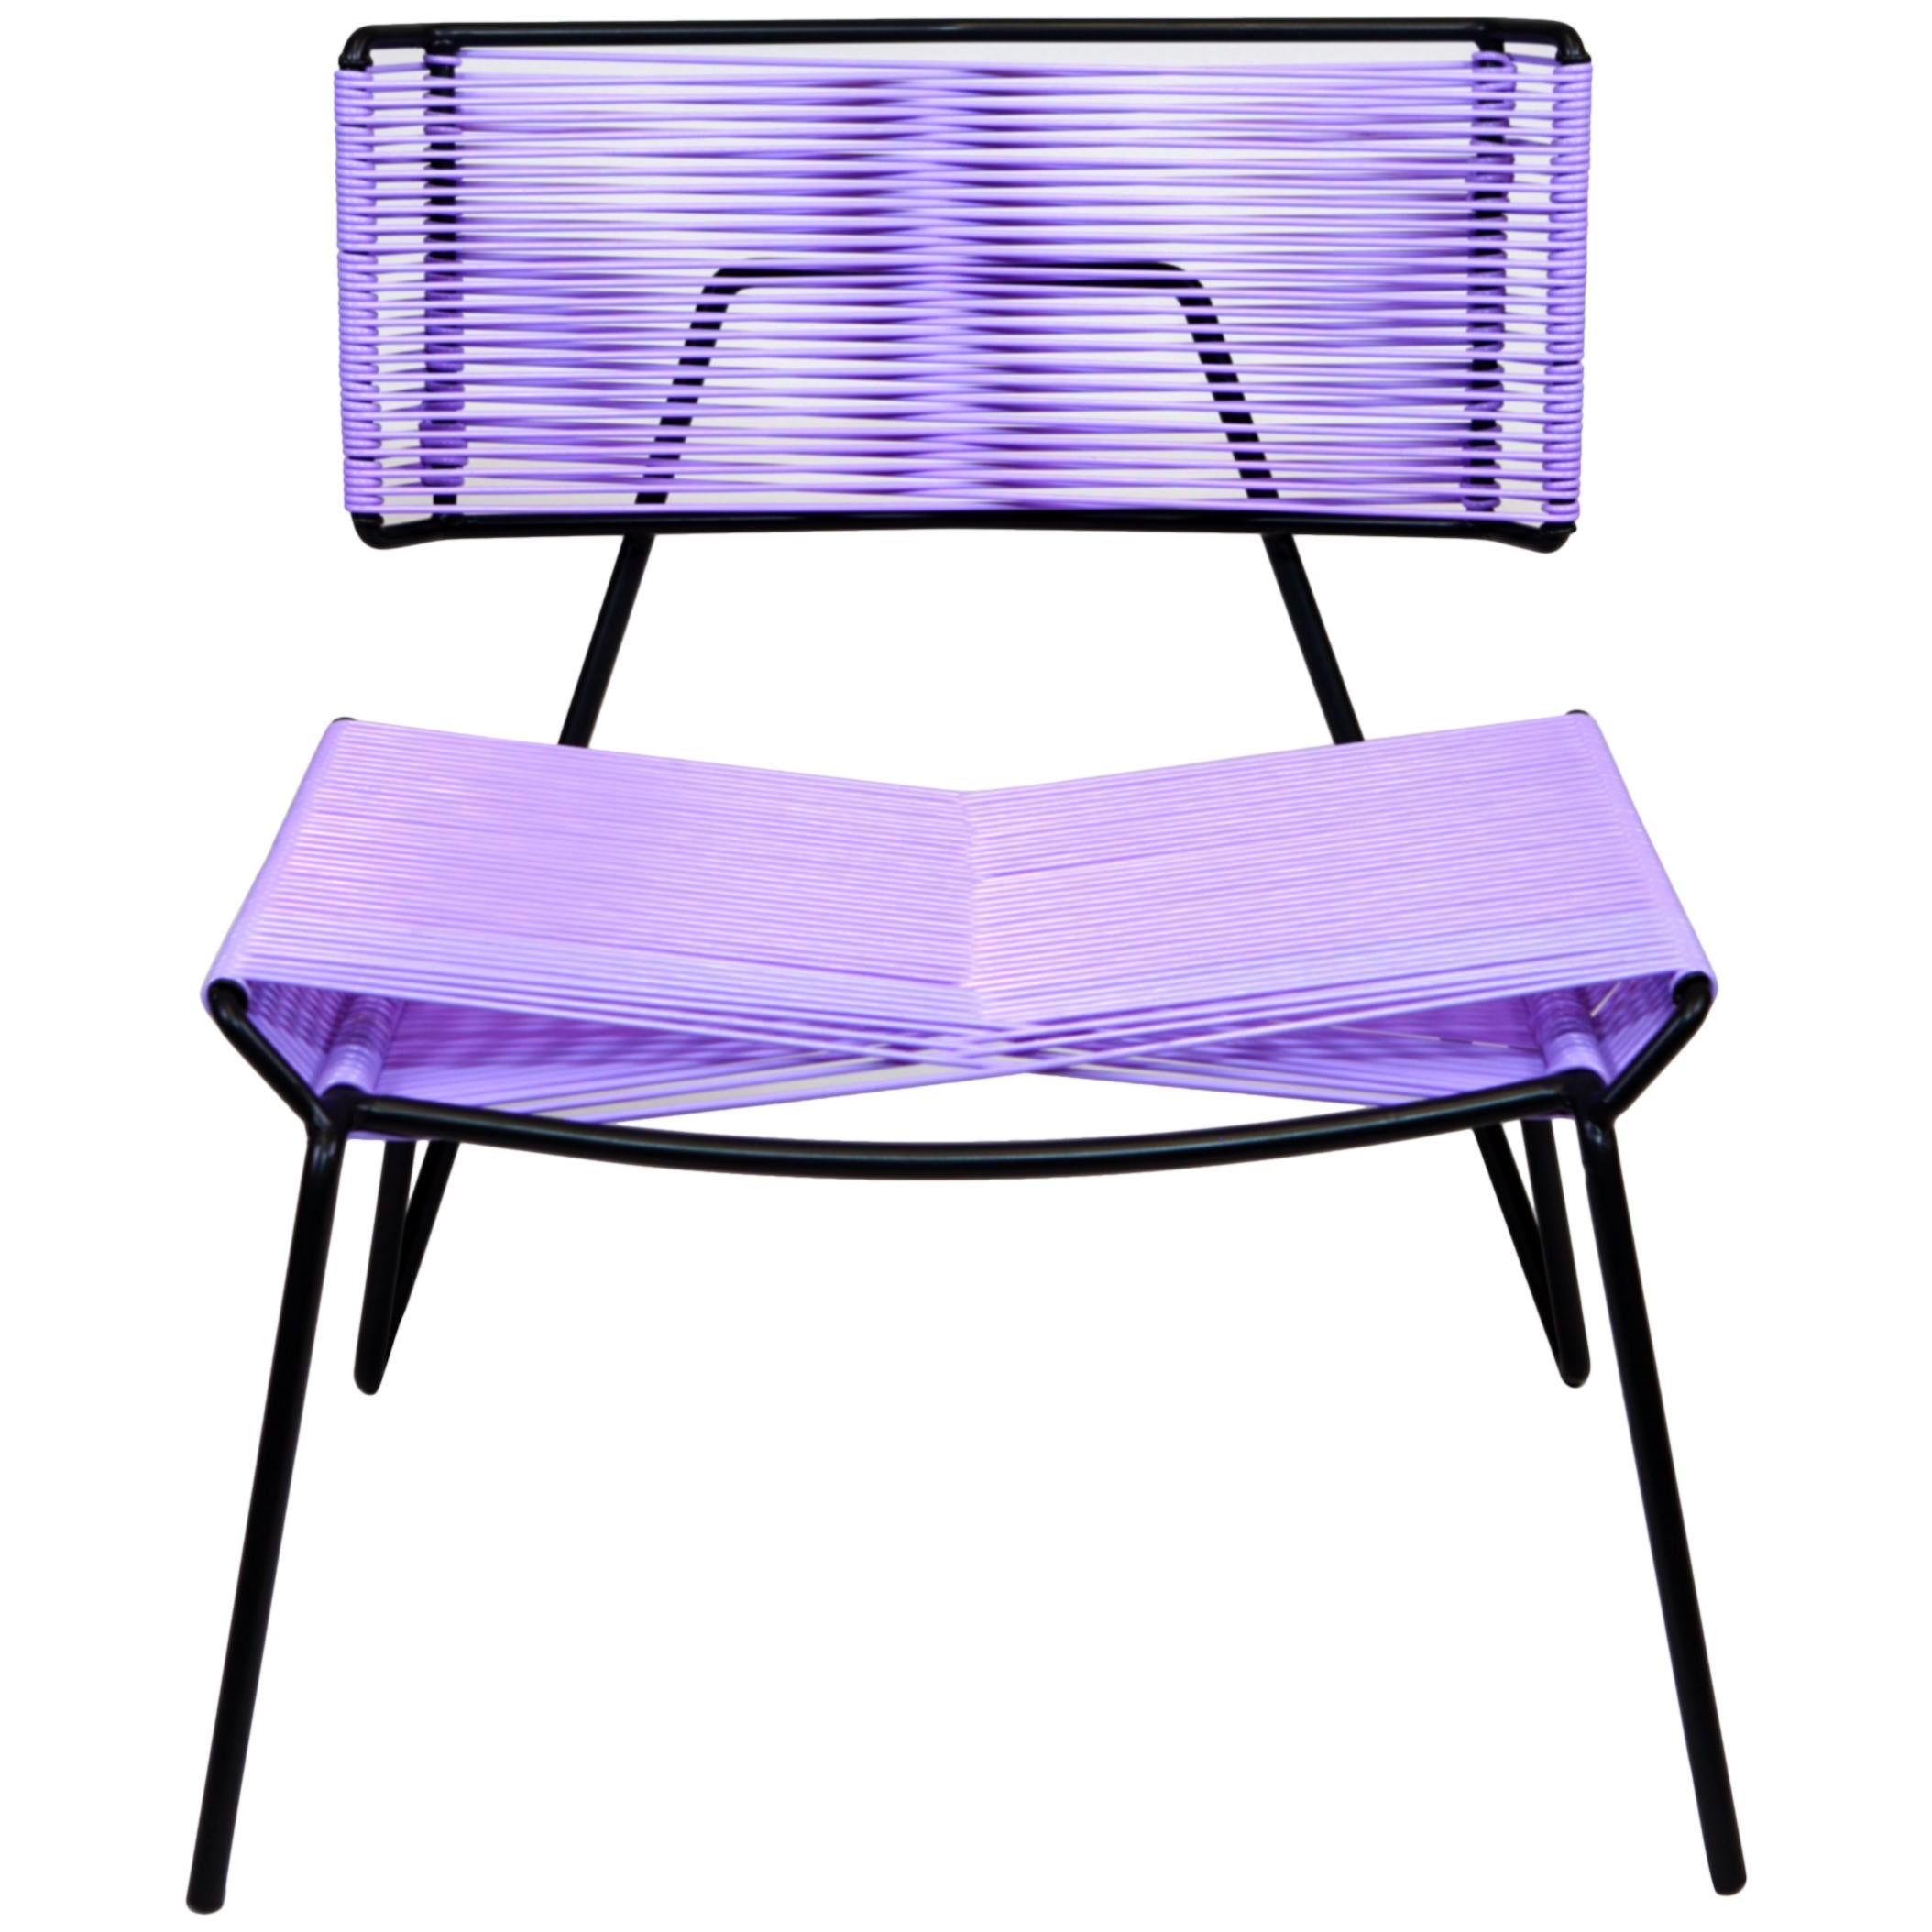 Handmade Midcentury Style Outdoor Chair Charcoal Steel, Lavender PVC in Stock